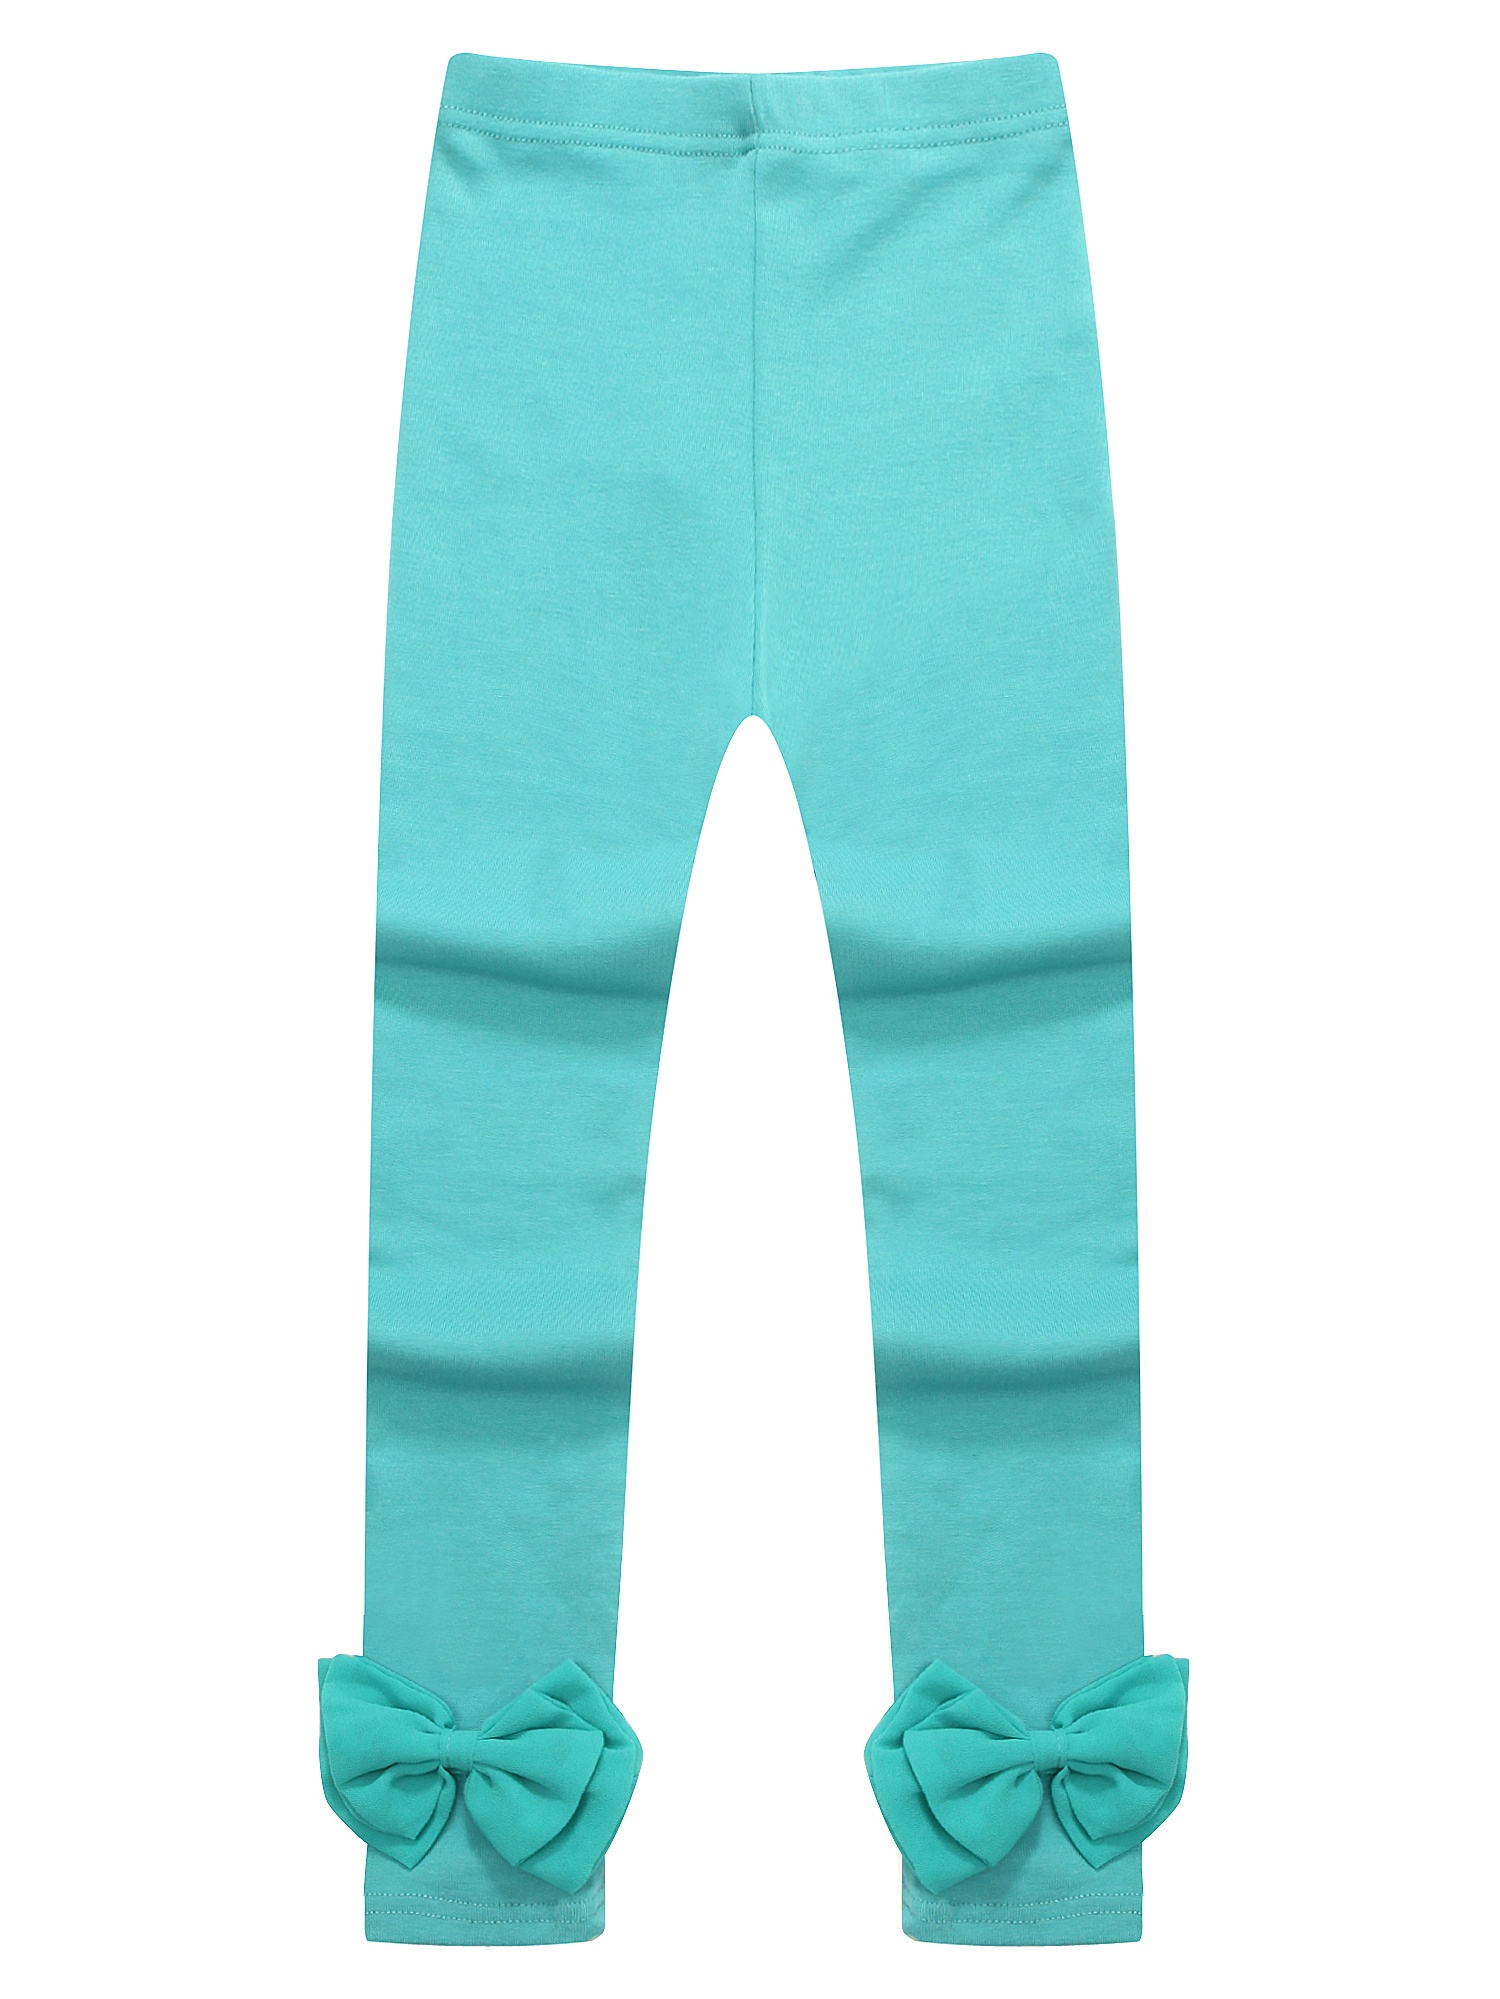 Richie House Girls' Anchored Leggings with Bow at Cuff RH1530